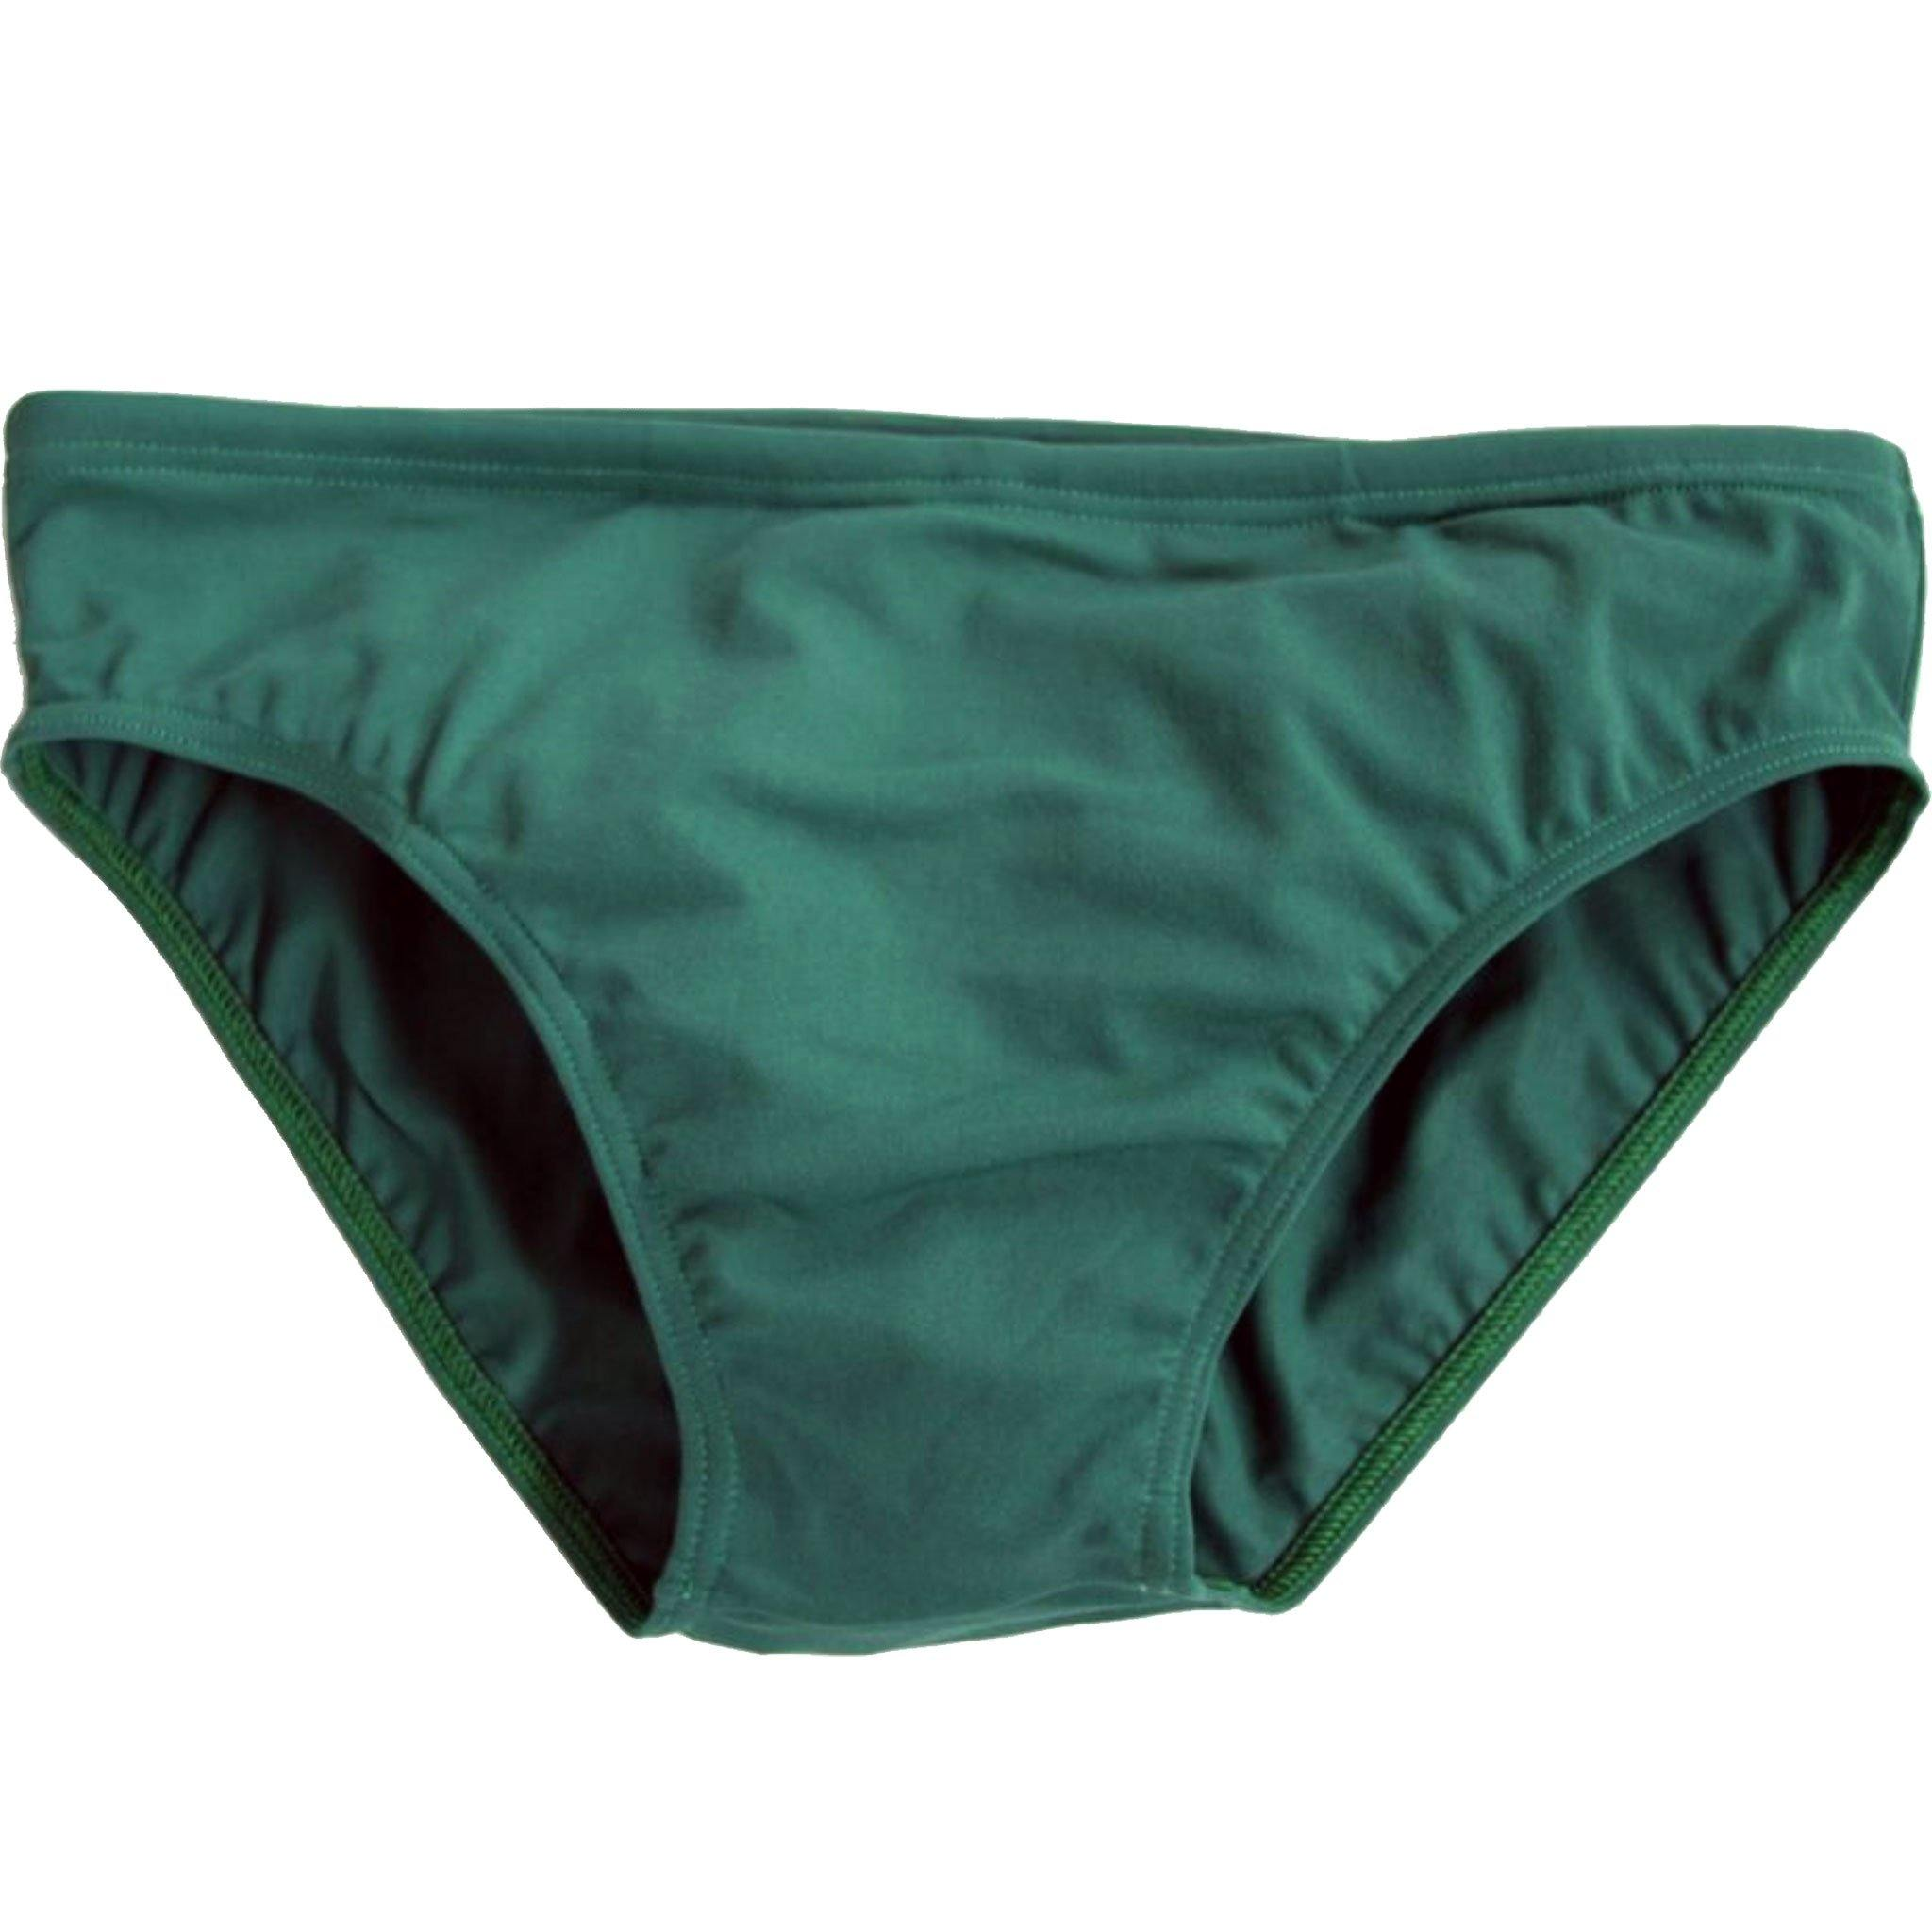 CIRCA75 Men's Chlorine Resistant Swimming Brief Bottle Green